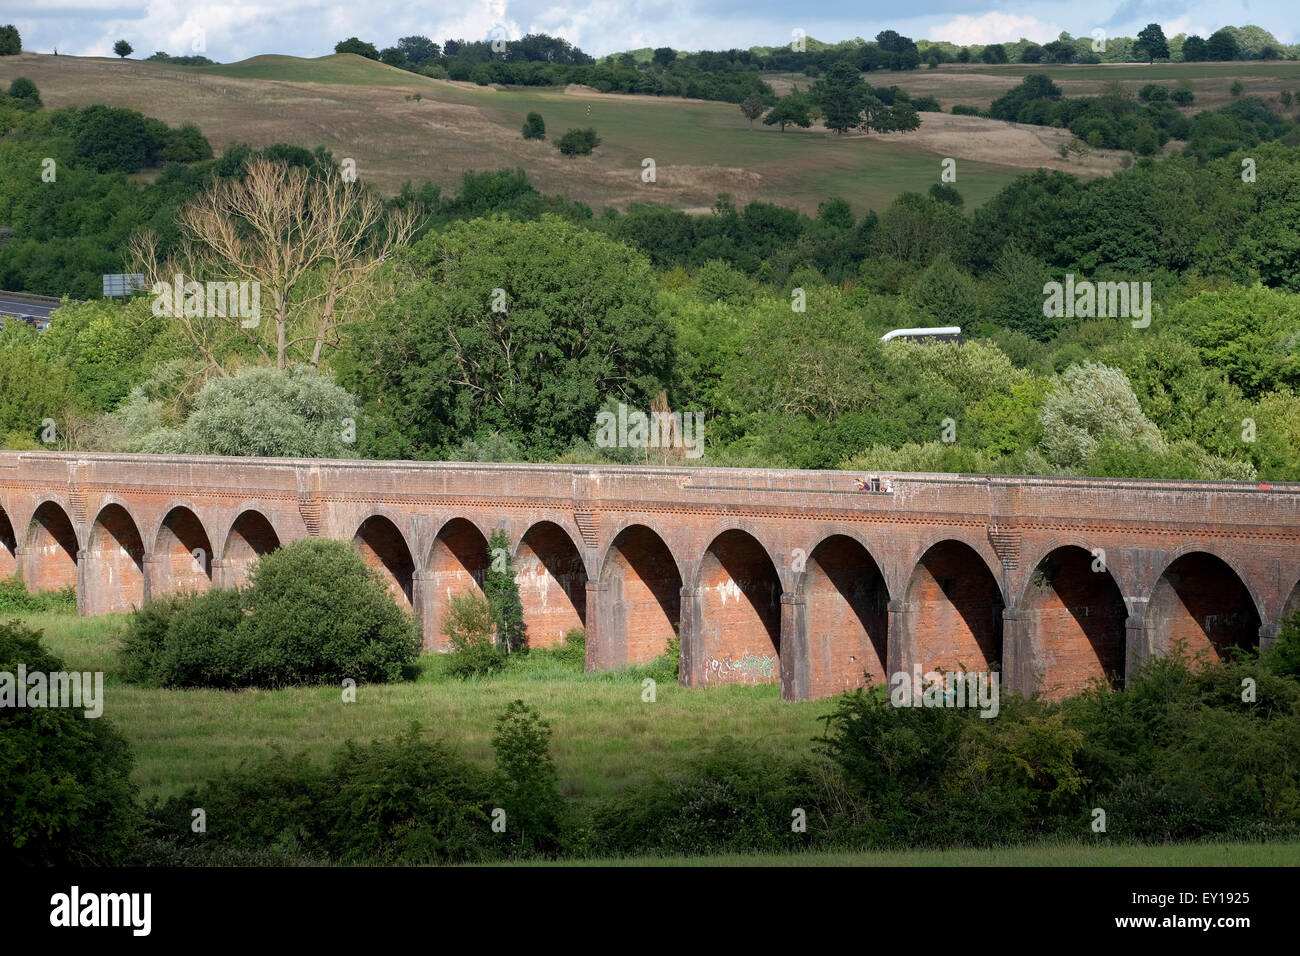 Hockley Viaduct in Winchester that has been restored and turned into a footpath and cycle way called the Viaduct - Stock Image